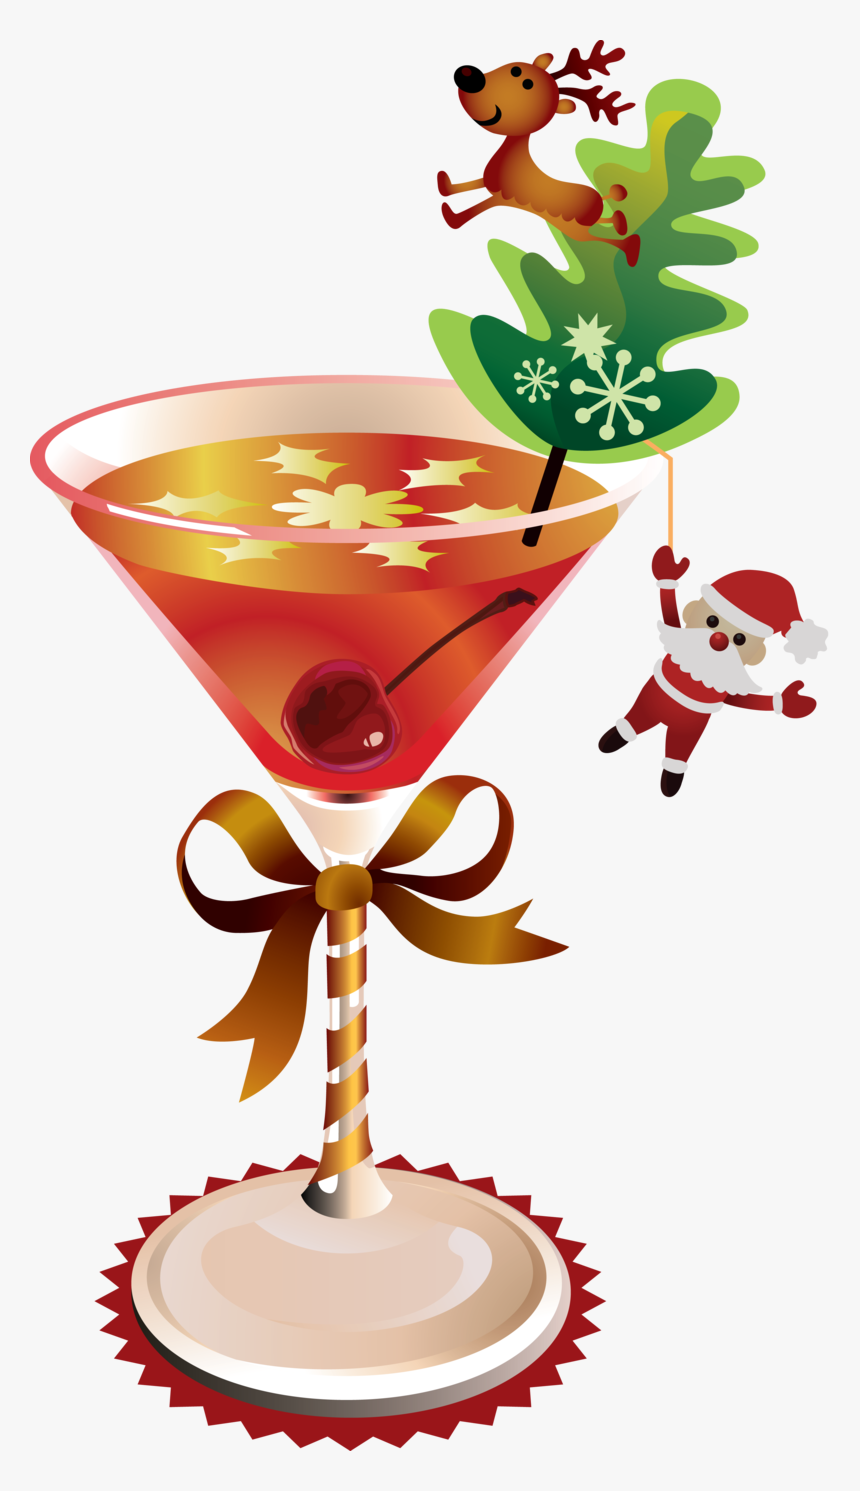 44594 - Christmas Drinks Clipart, HD Png Download, Free Download